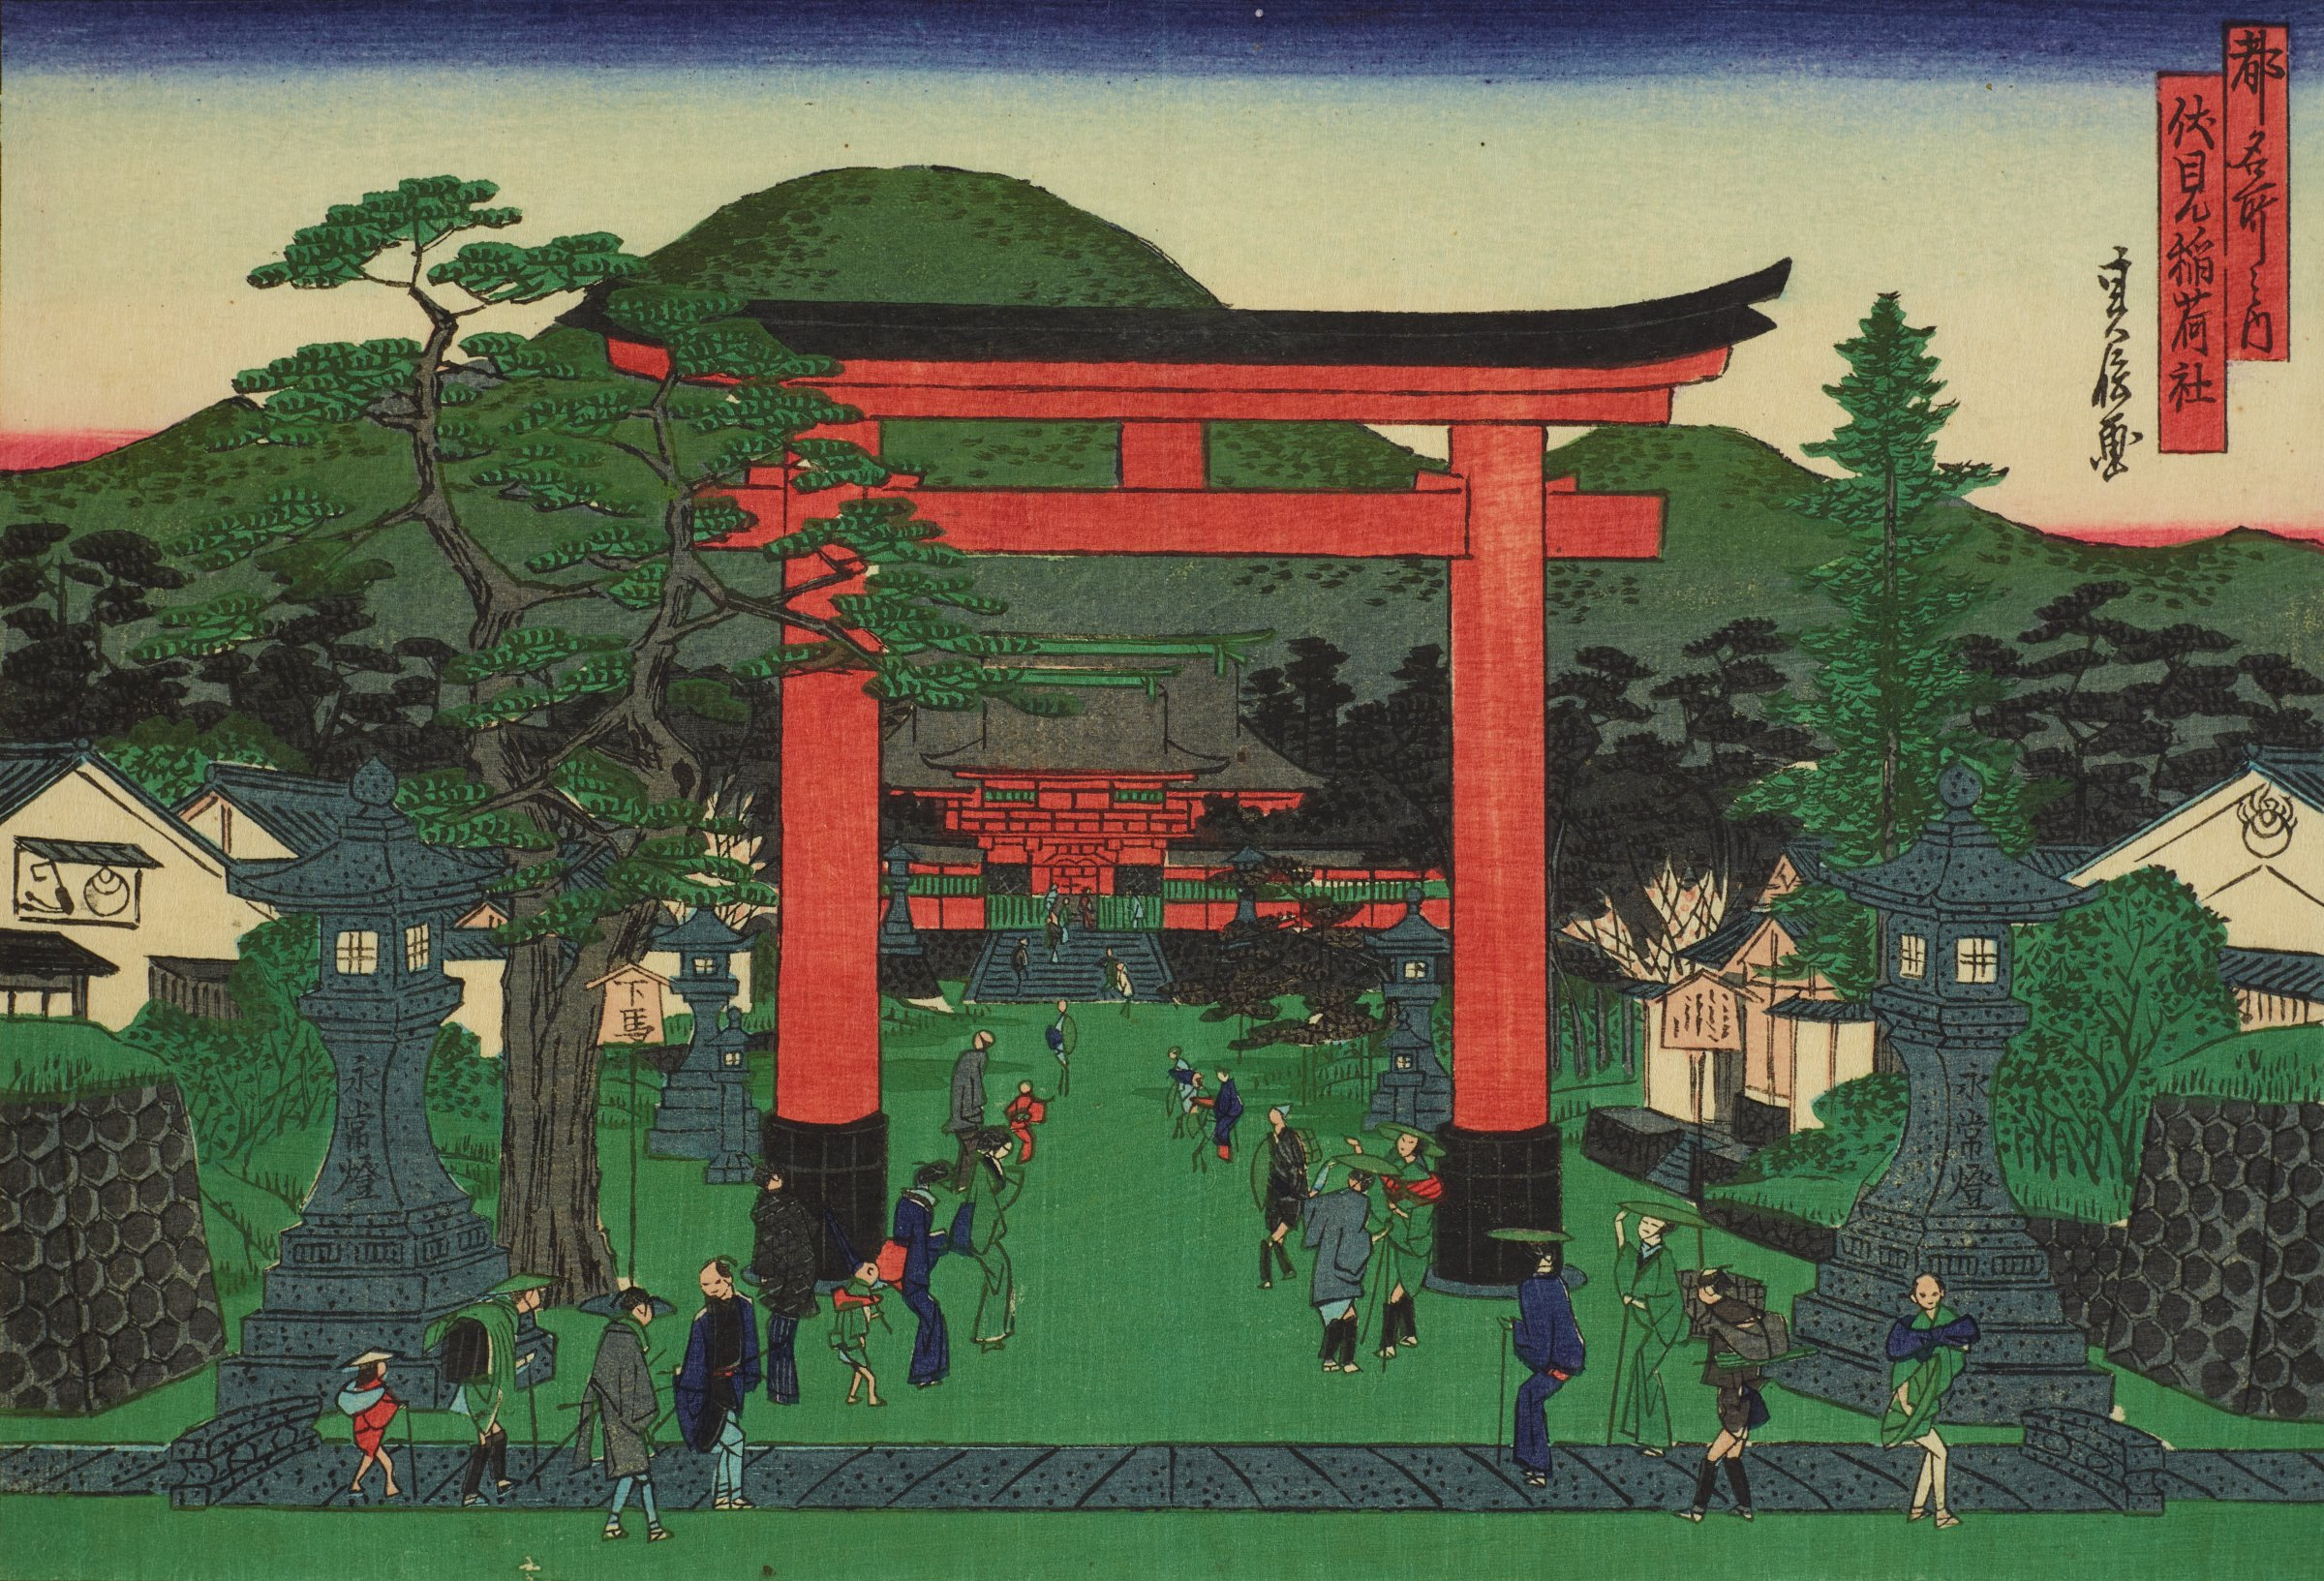 Fushimi Inari Yashiro, Miyako Meisho no uchi (Fushimi Inari Shrine, Famous Places in the Capital), Hasegawa Sadanobu, Published by Wataya Kihei, ink and color on paper